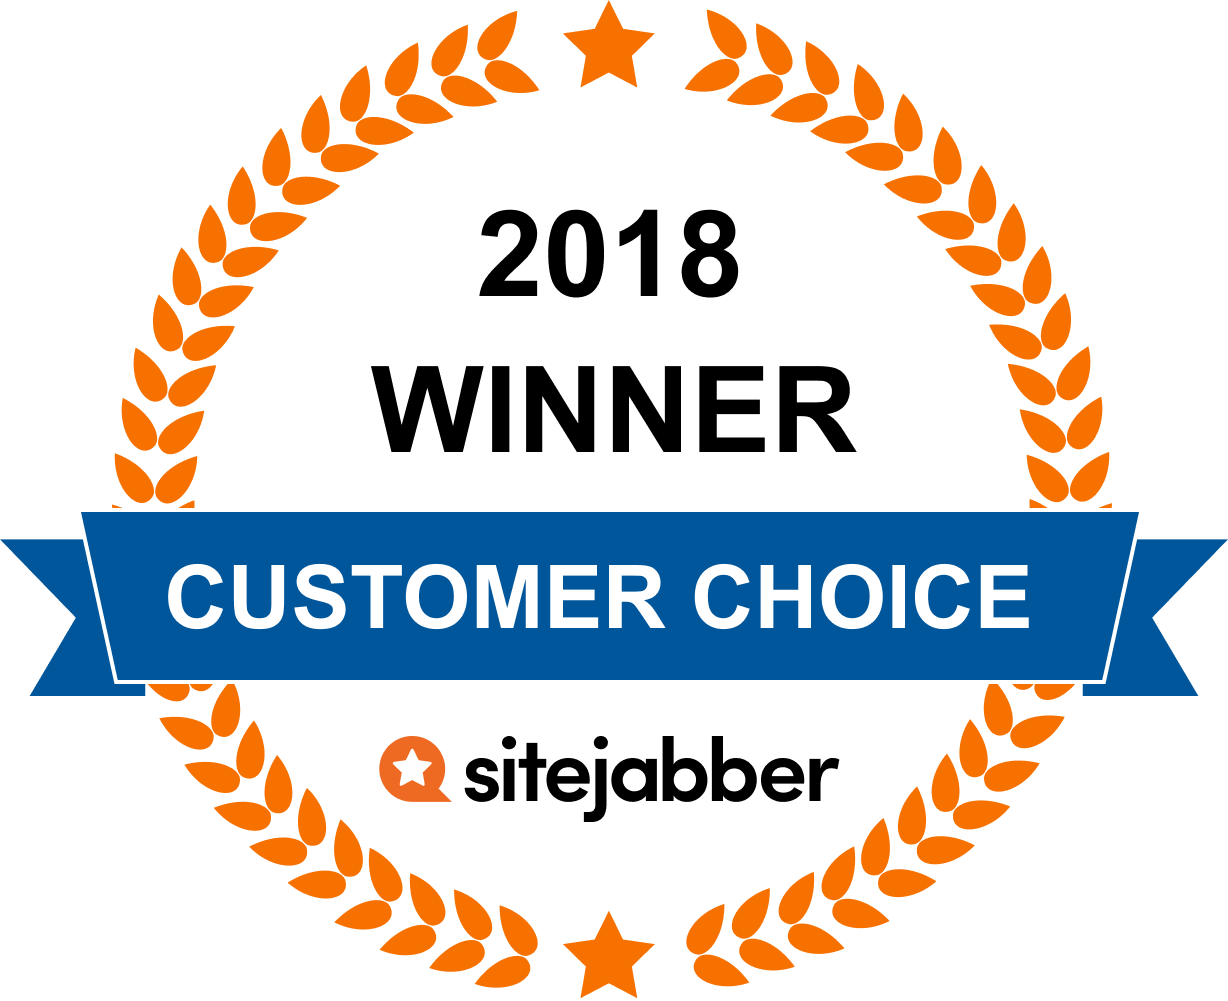 2018 Customer choice award